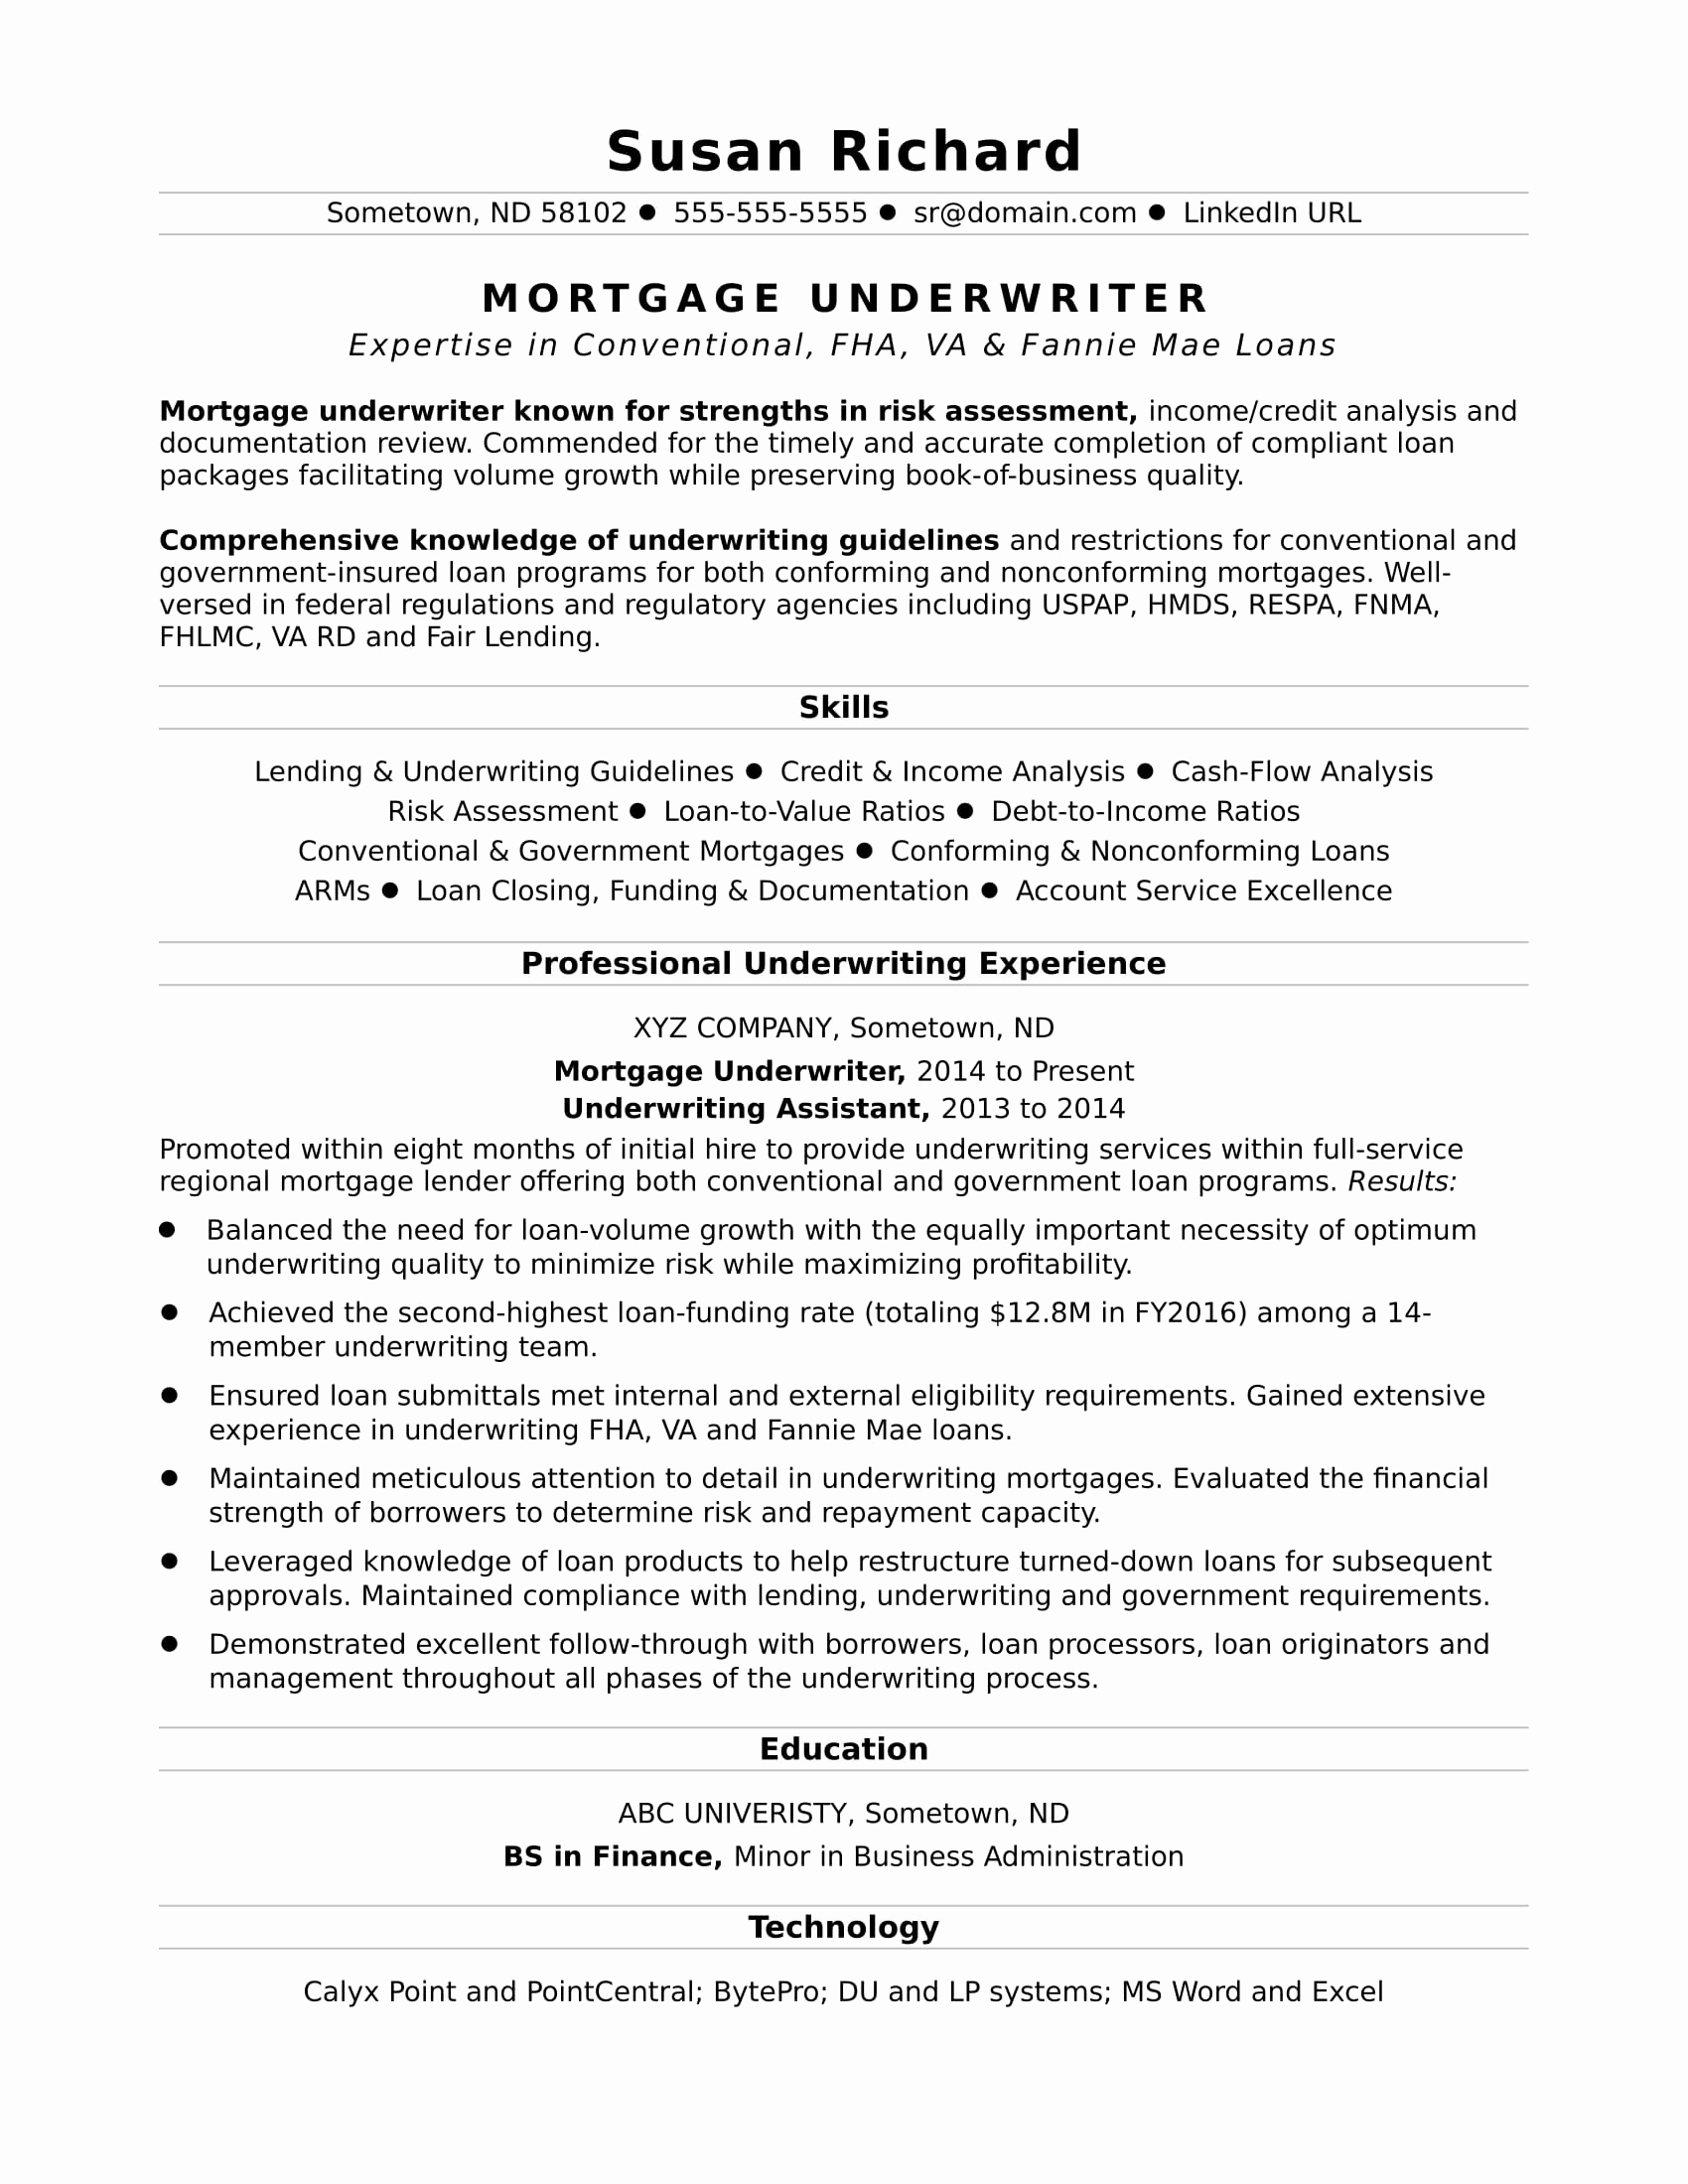 cover letter template 2018 linkedin cover letter lovely detailed resume template luxury signs